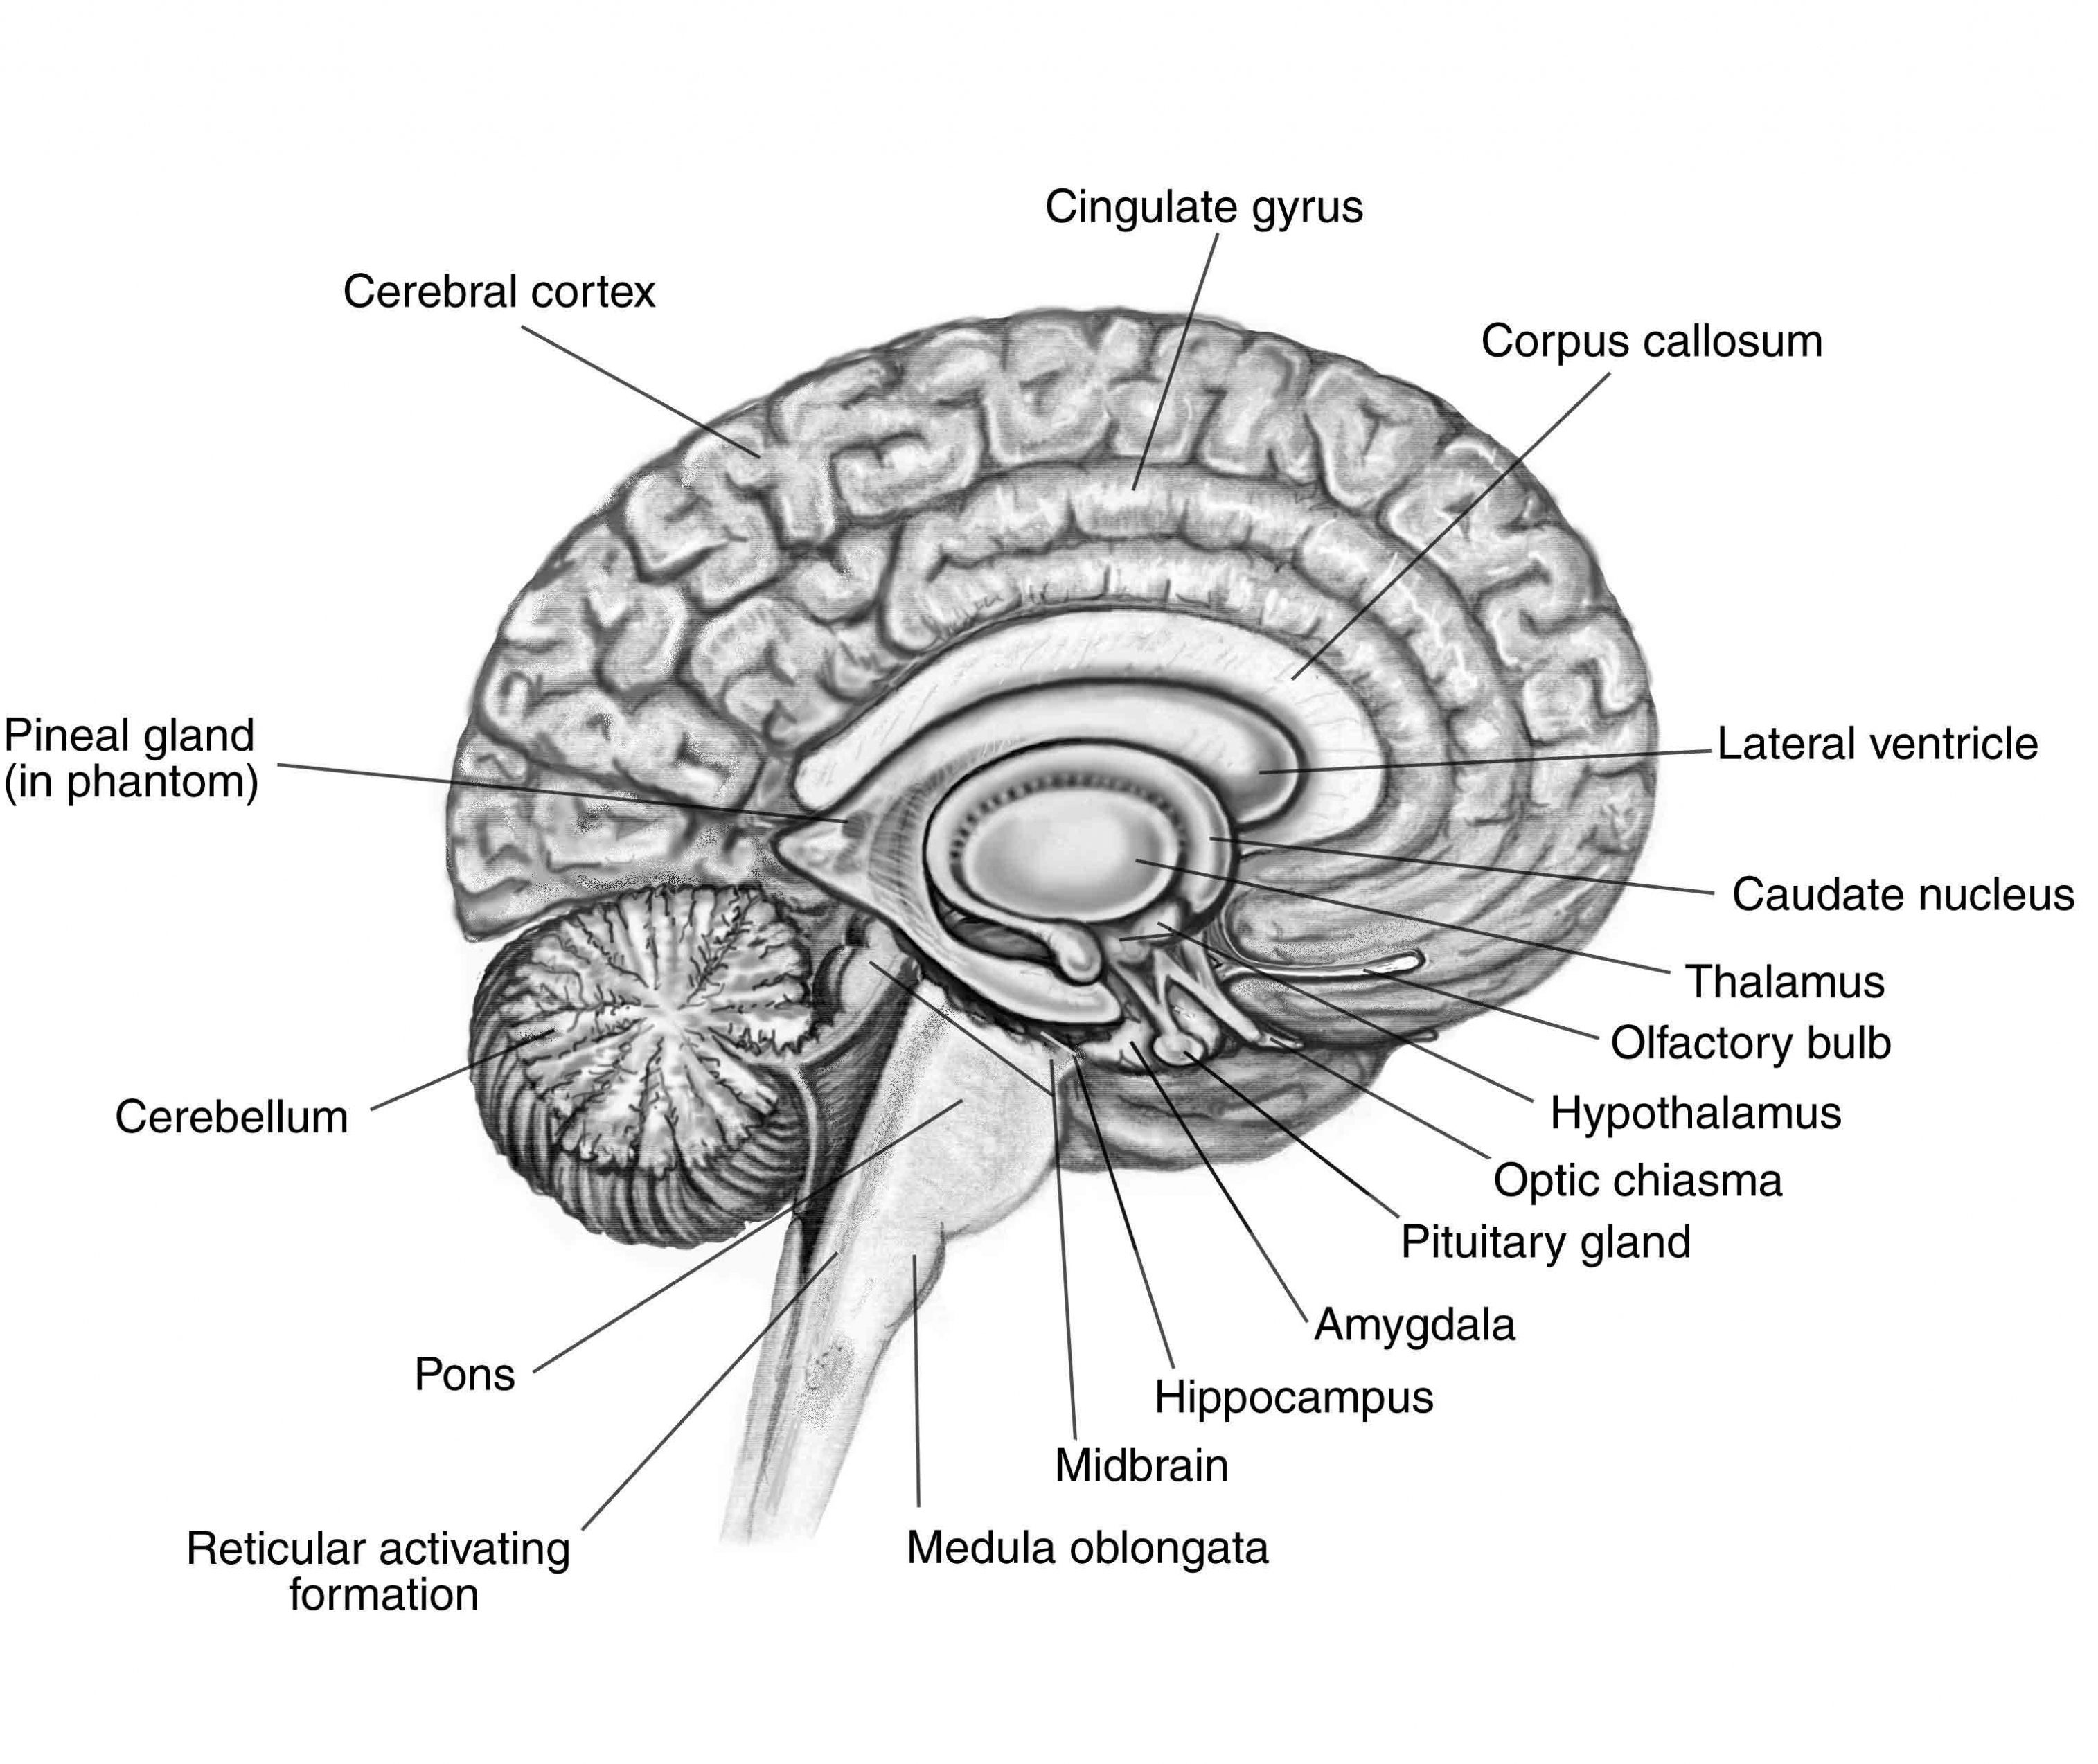 Labeled Parts Of The Brain Koibana Info Brain Diagram Brain Parts And Functions Brain Drawing